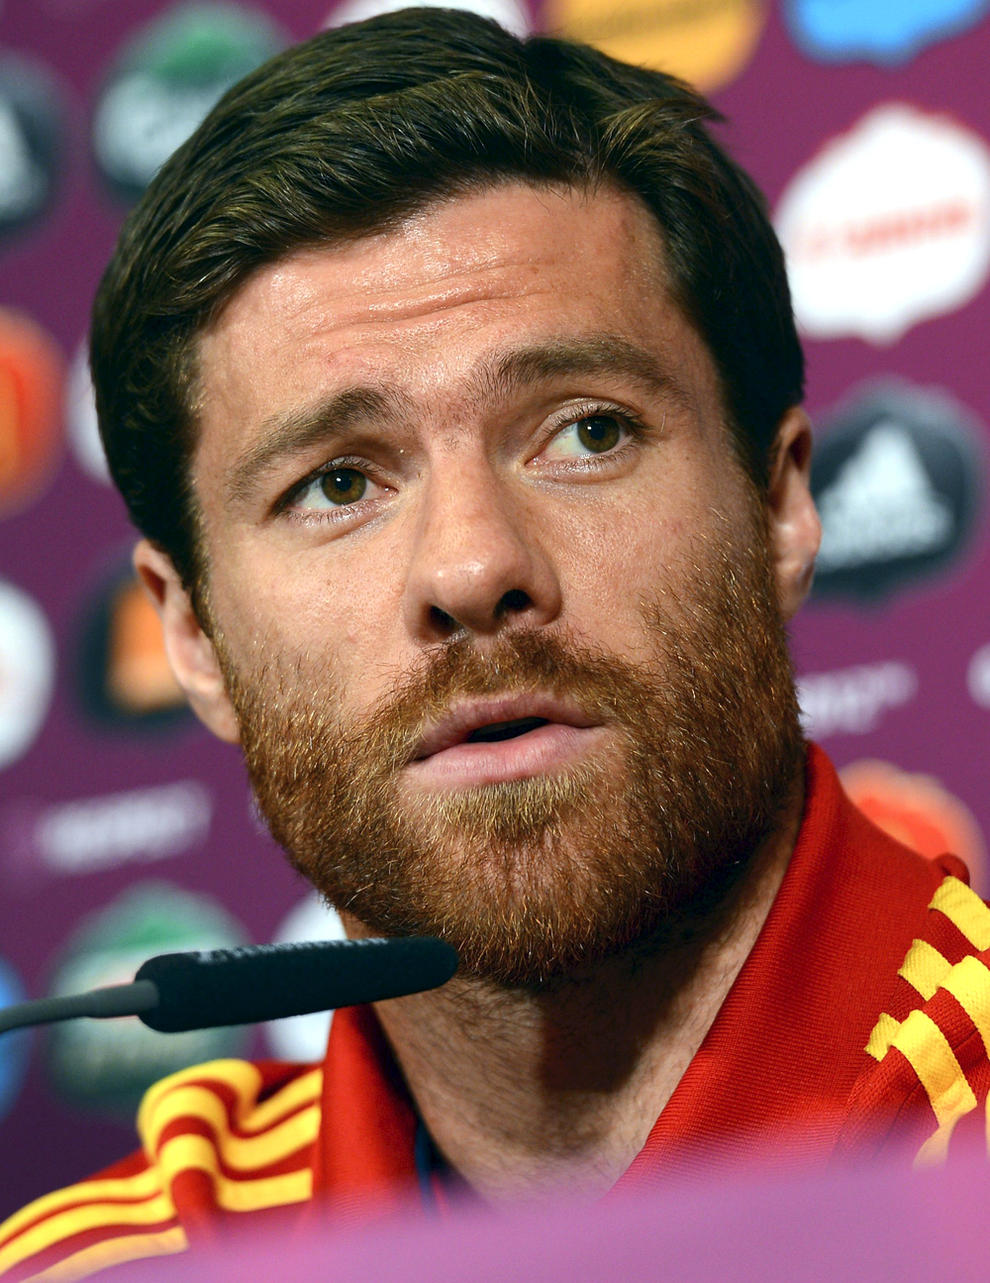 Xabi Alonso photo 47 of 49 pics wallpaper photo ThePlace2